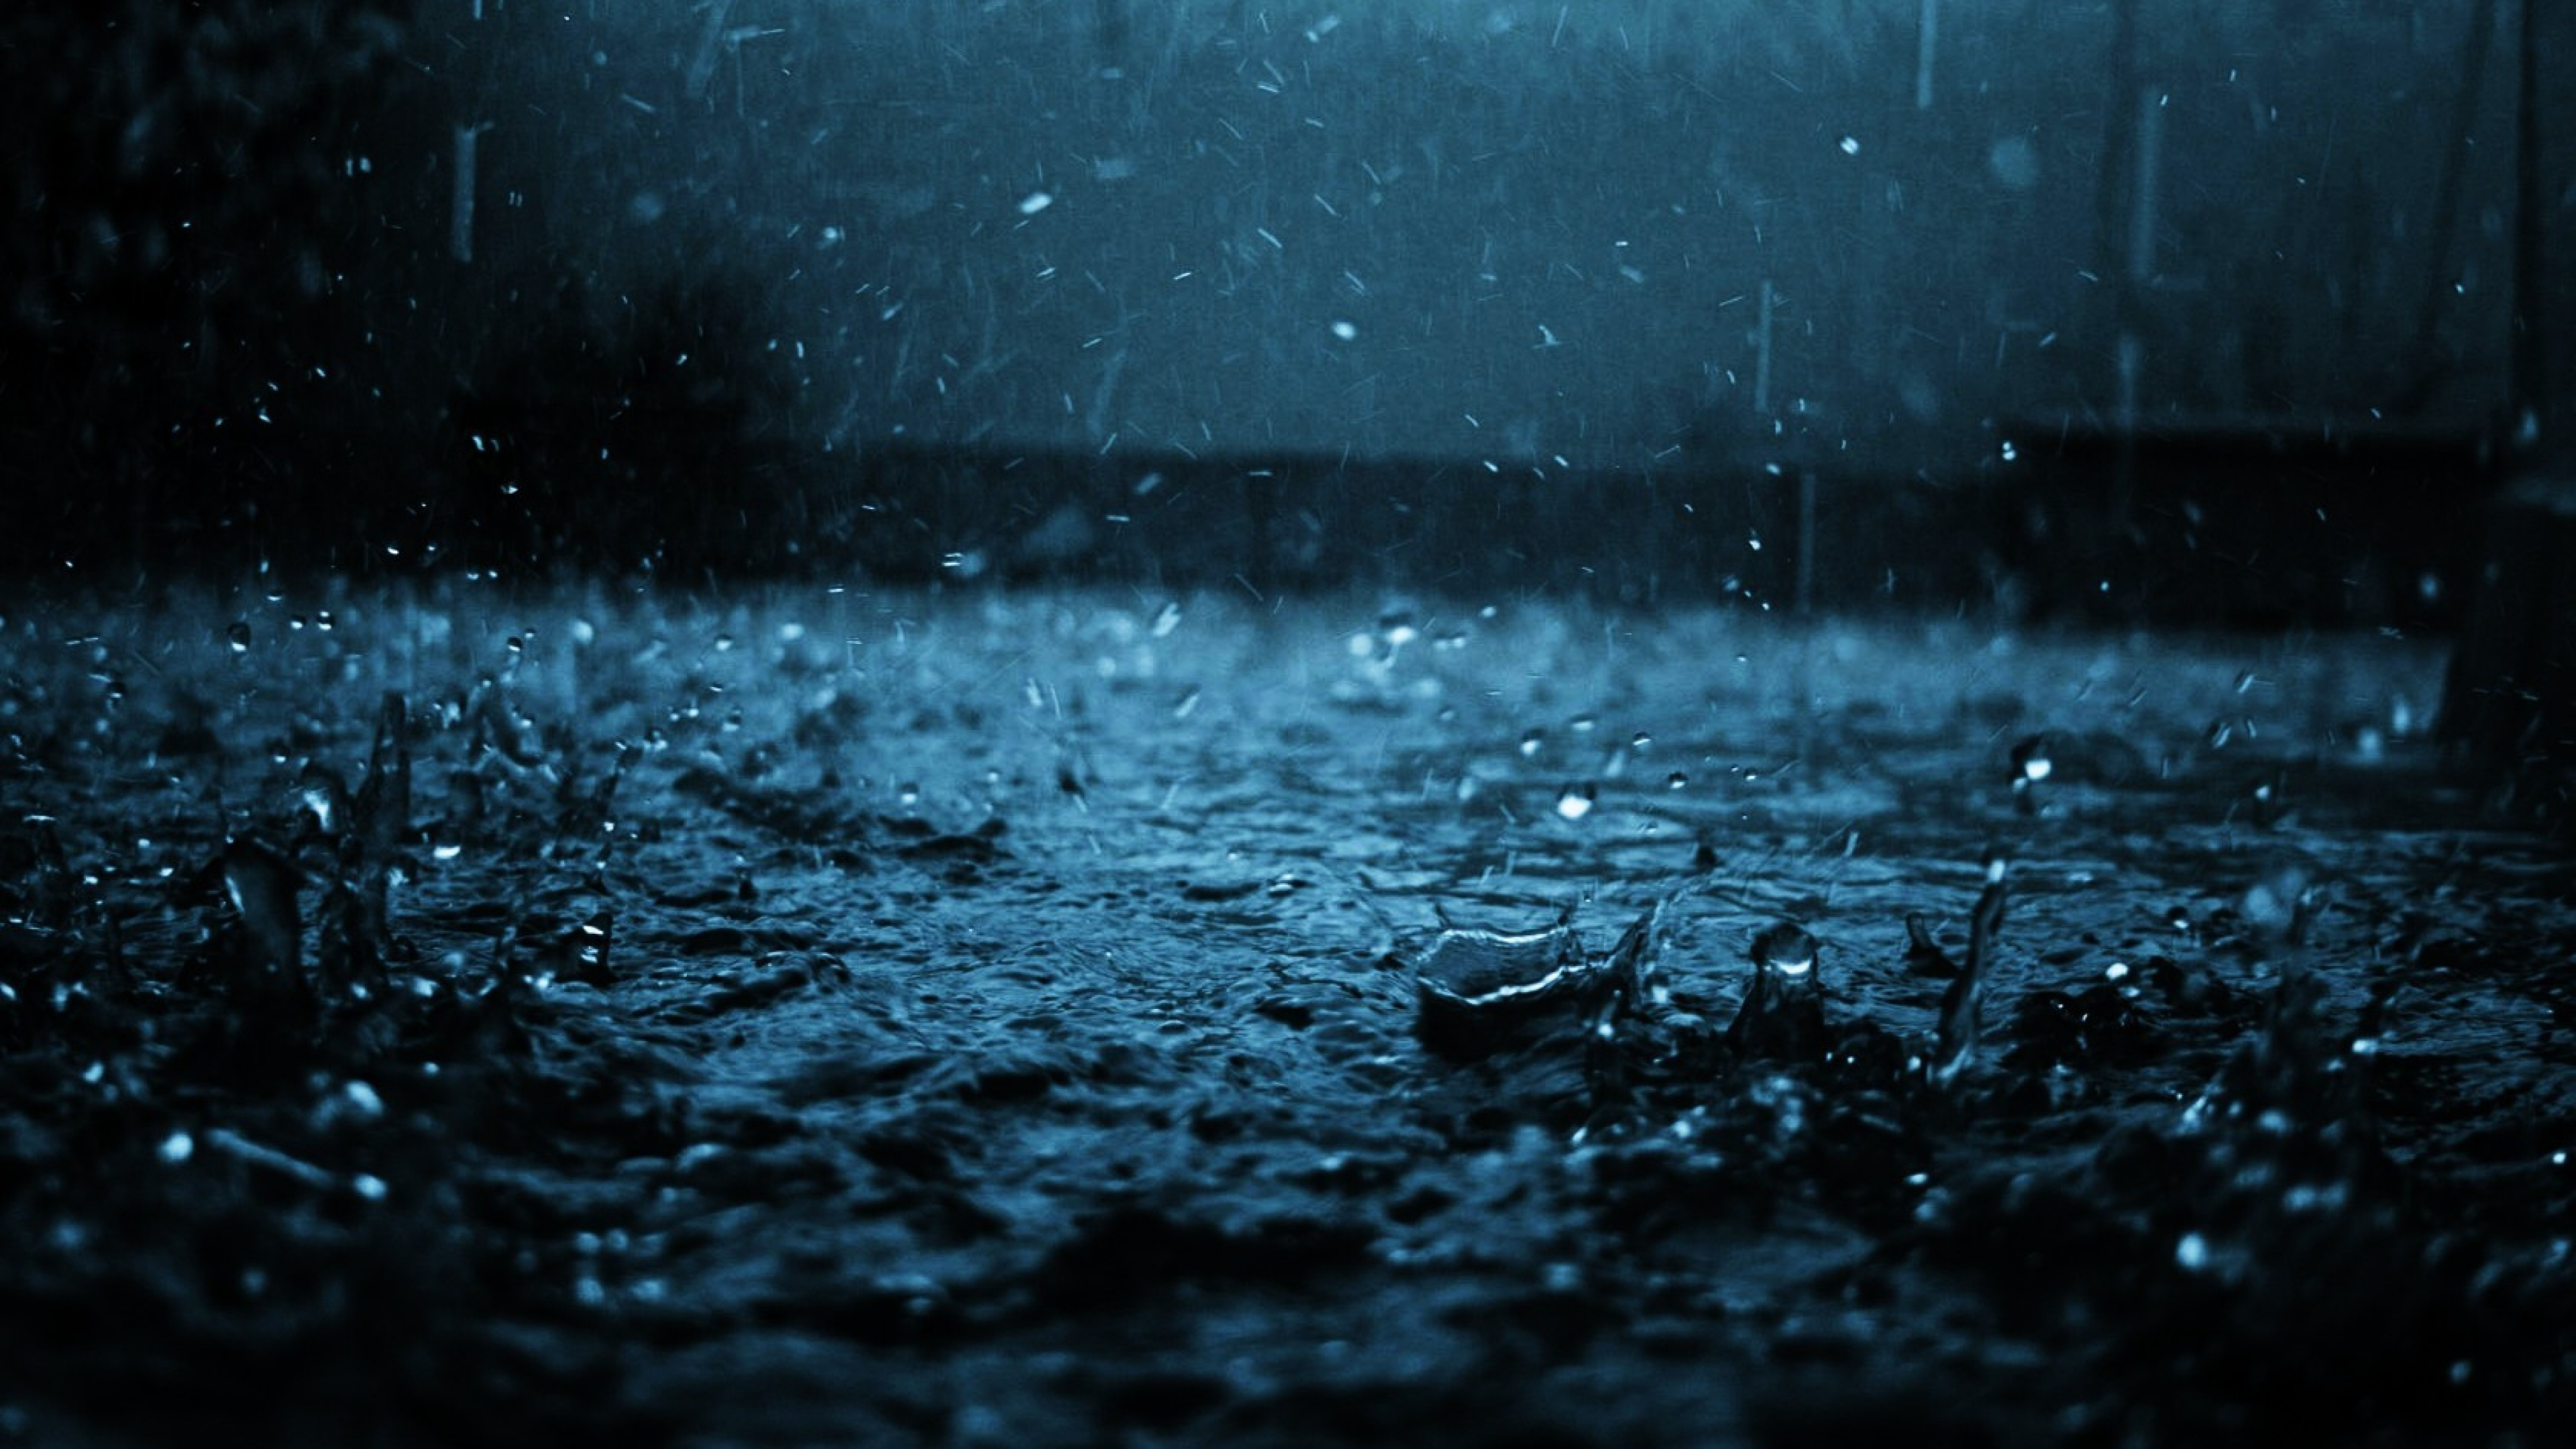 Rain Wallpaper Full HD